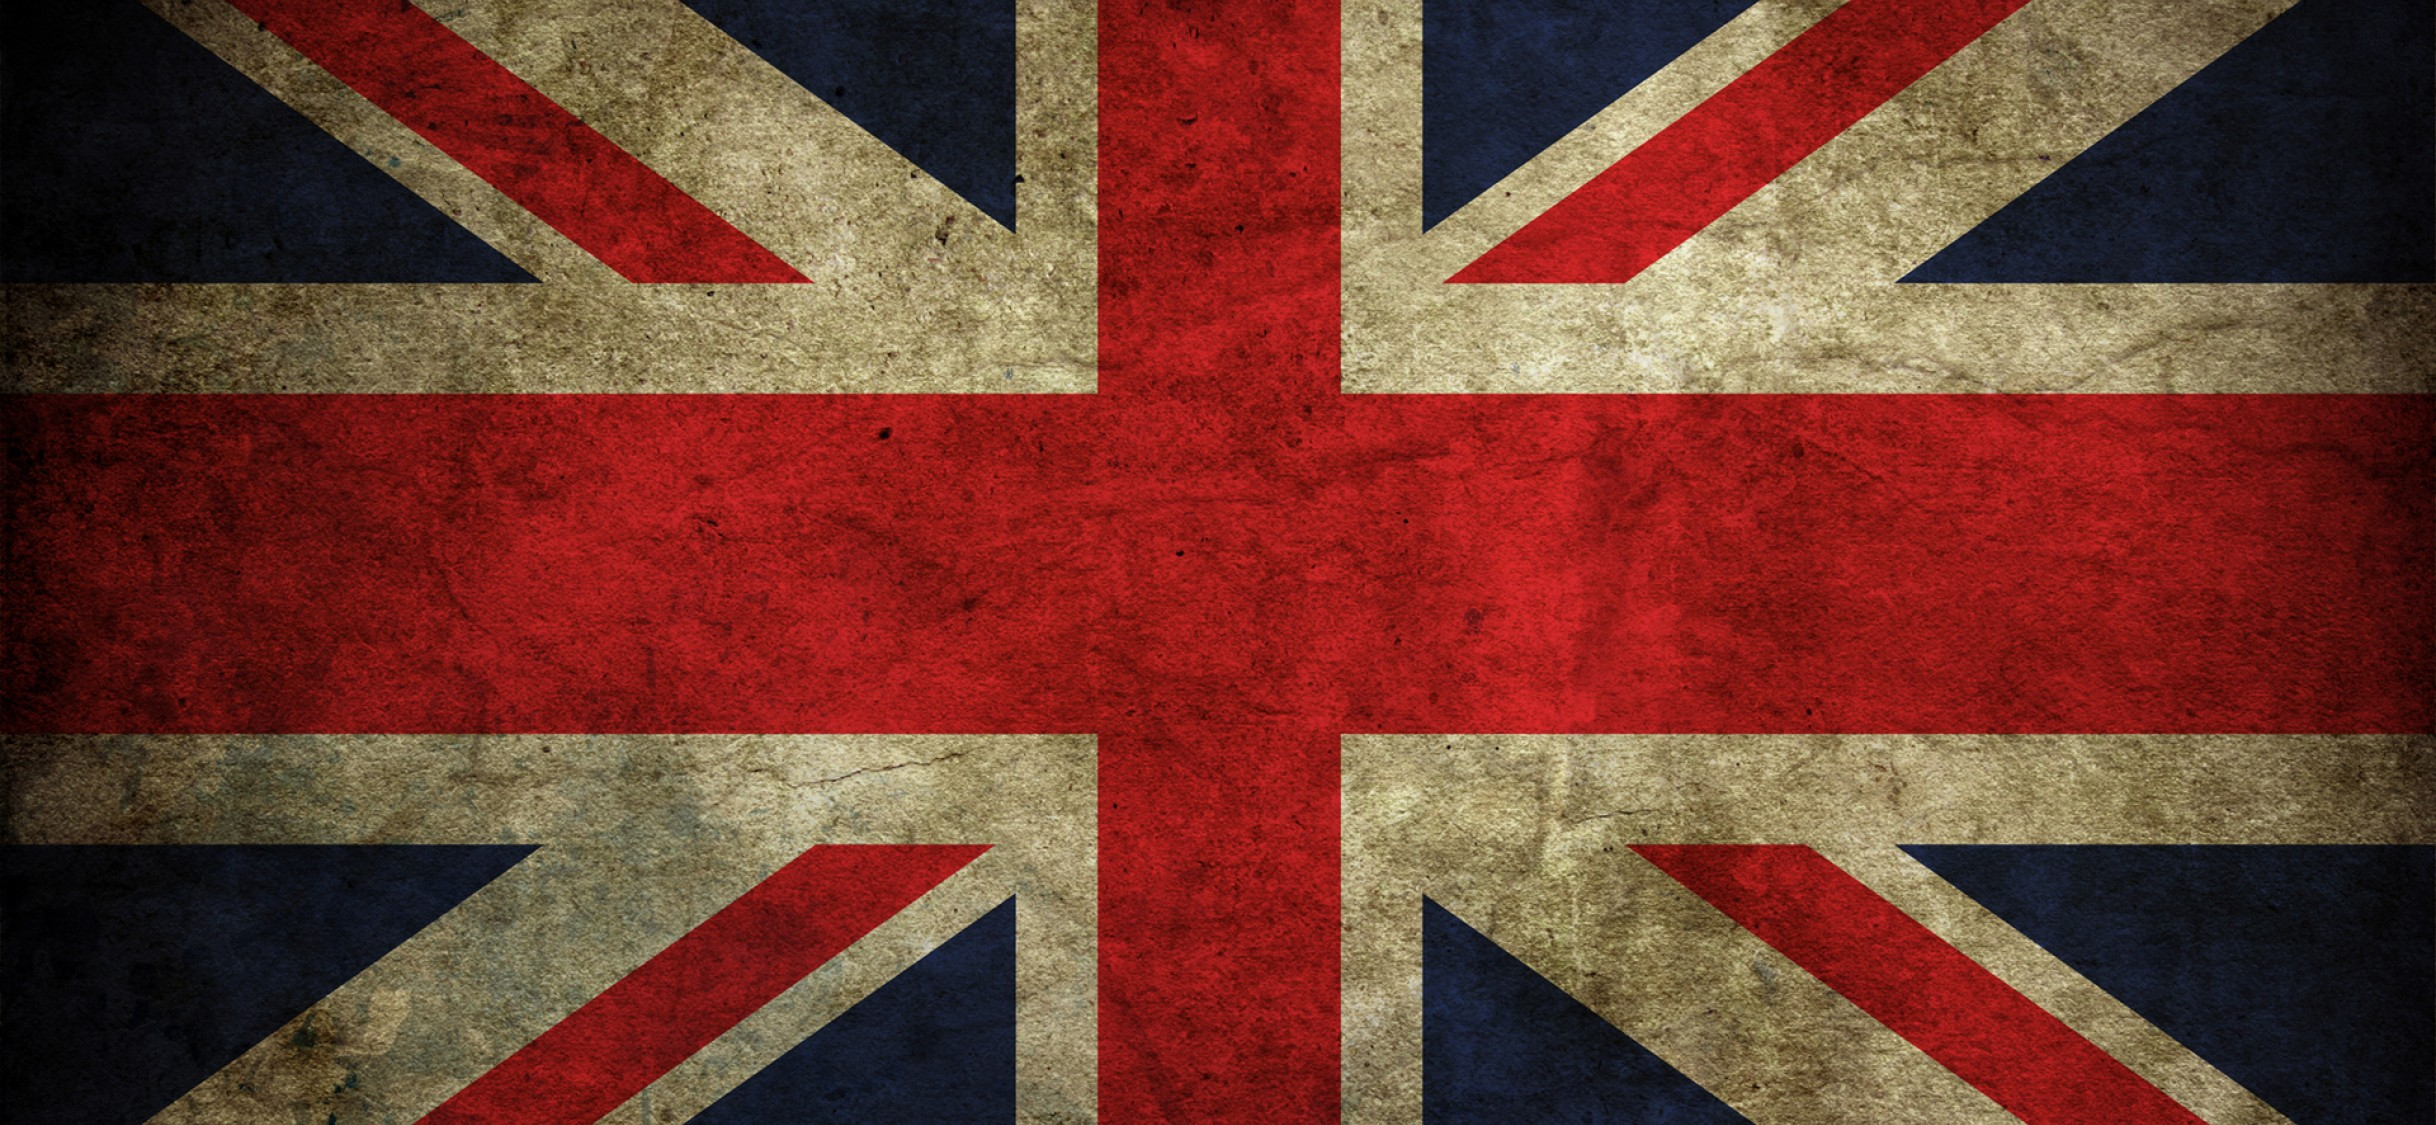 Union Jack Flag Wallpaper For Desktop And Mobiles Iphone X